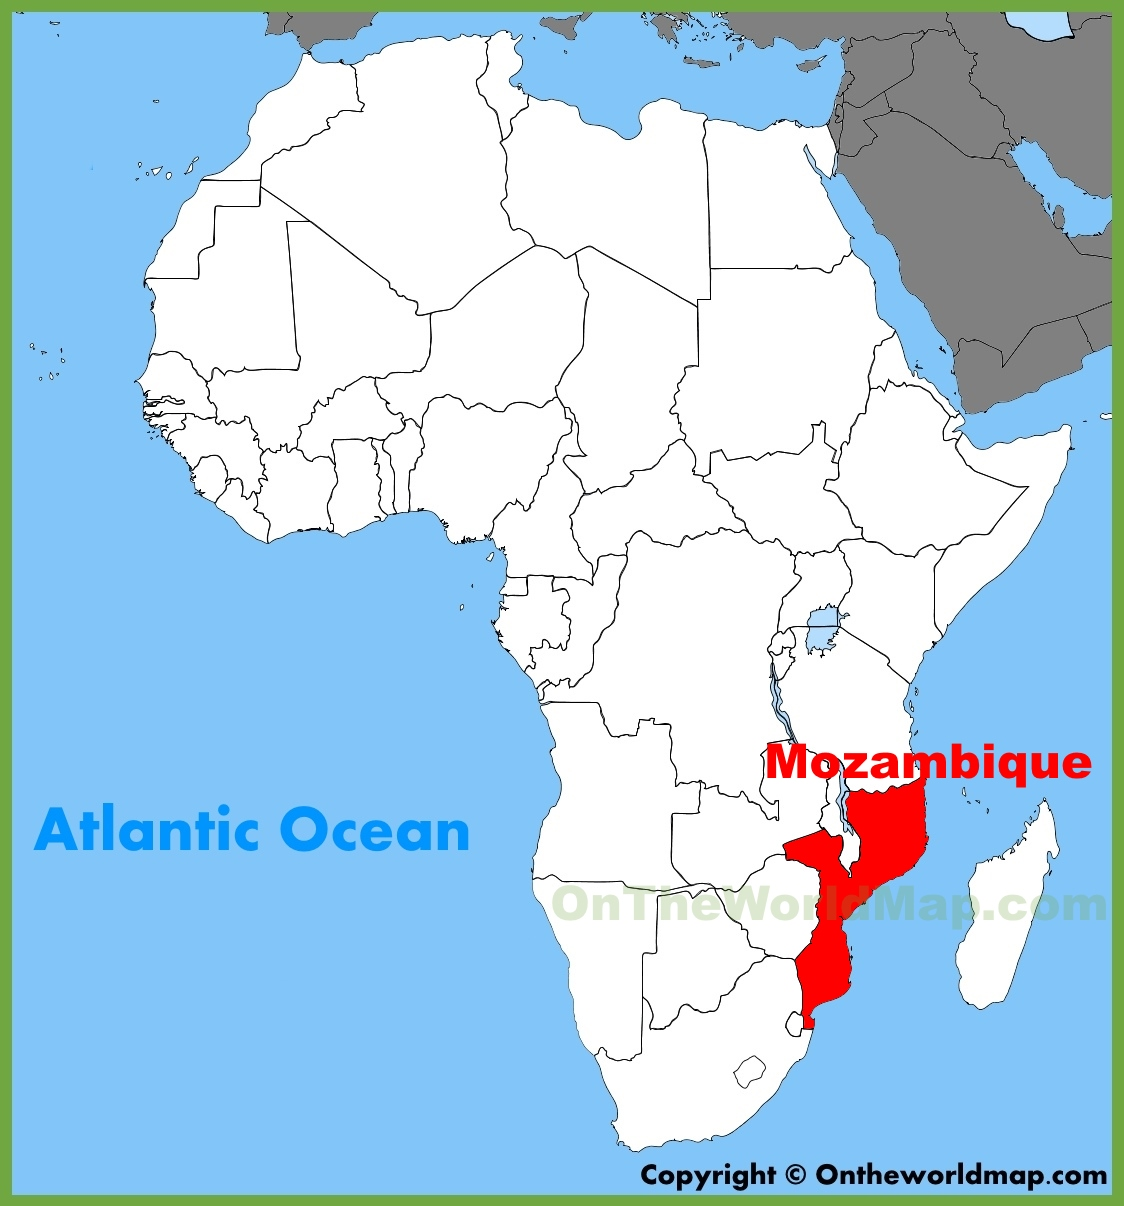 mozambique-location-on-the-africa-map.jpg